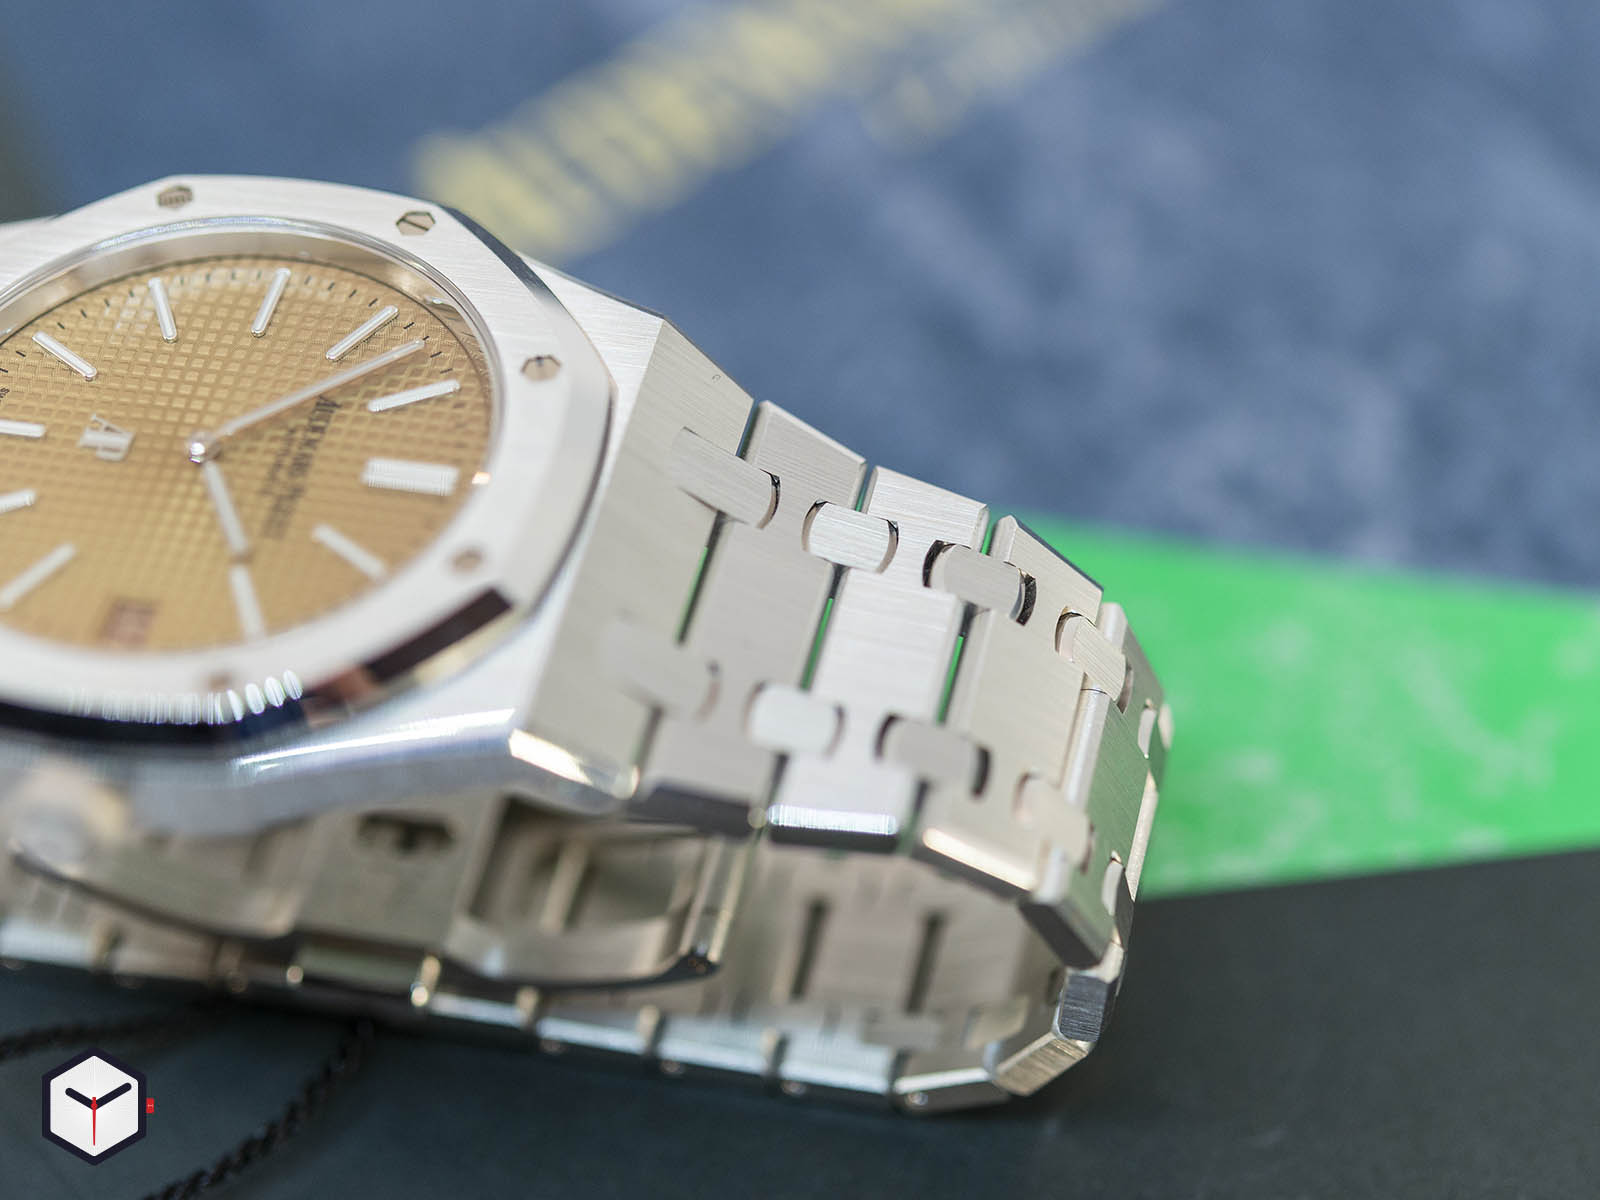 15202bc-oo-1240bc-01-audemars-piguet-royal-oak-jumbo-extra-thin-2019-4.jpg